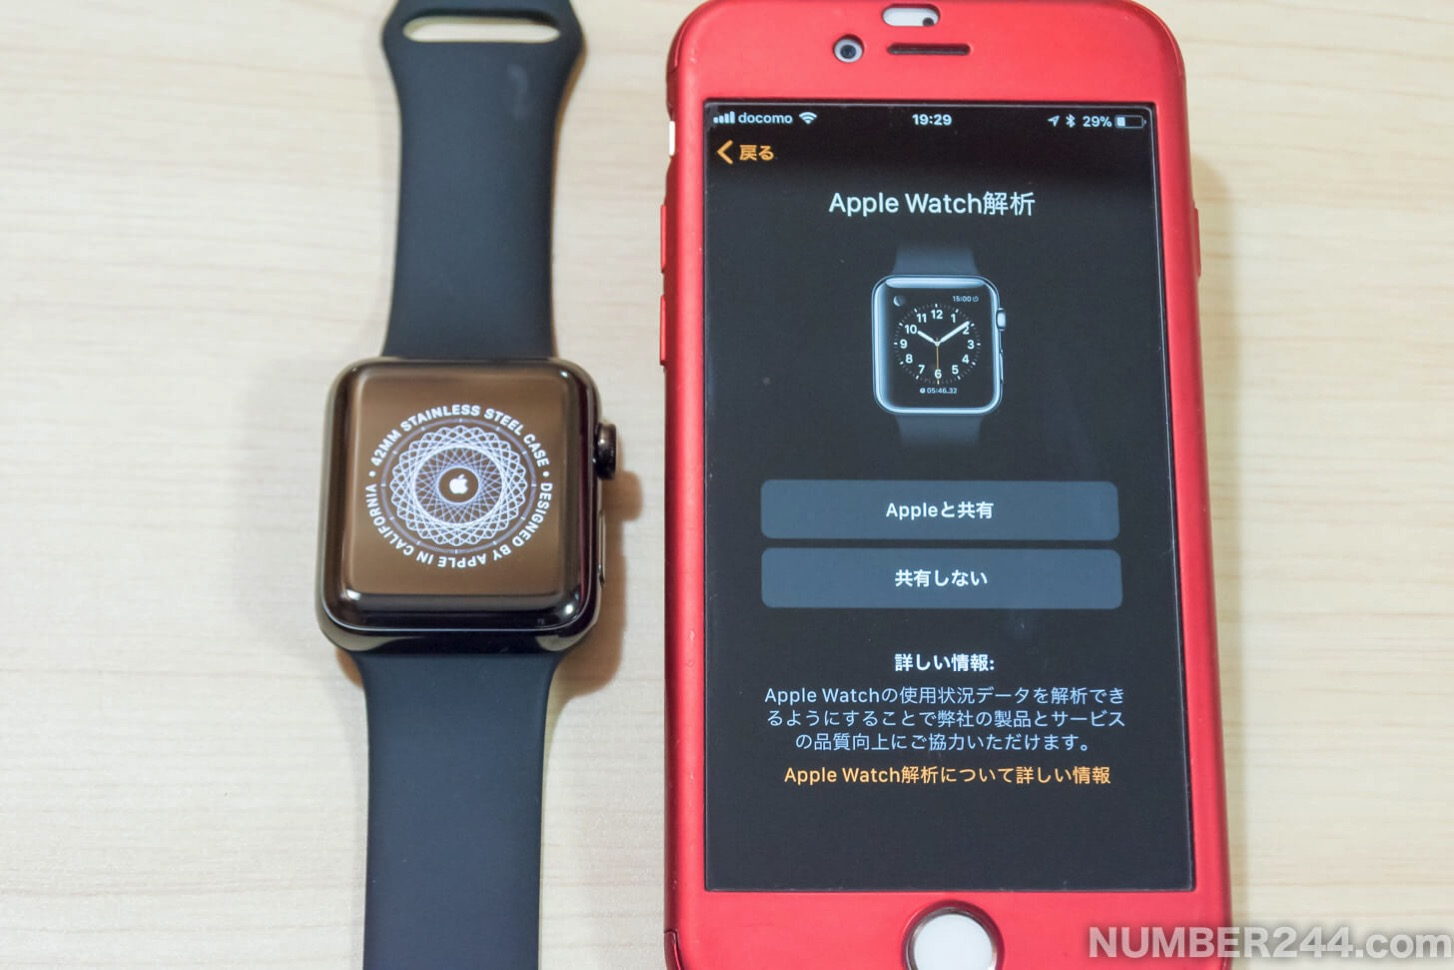 Initial setting of Apple Watch 10